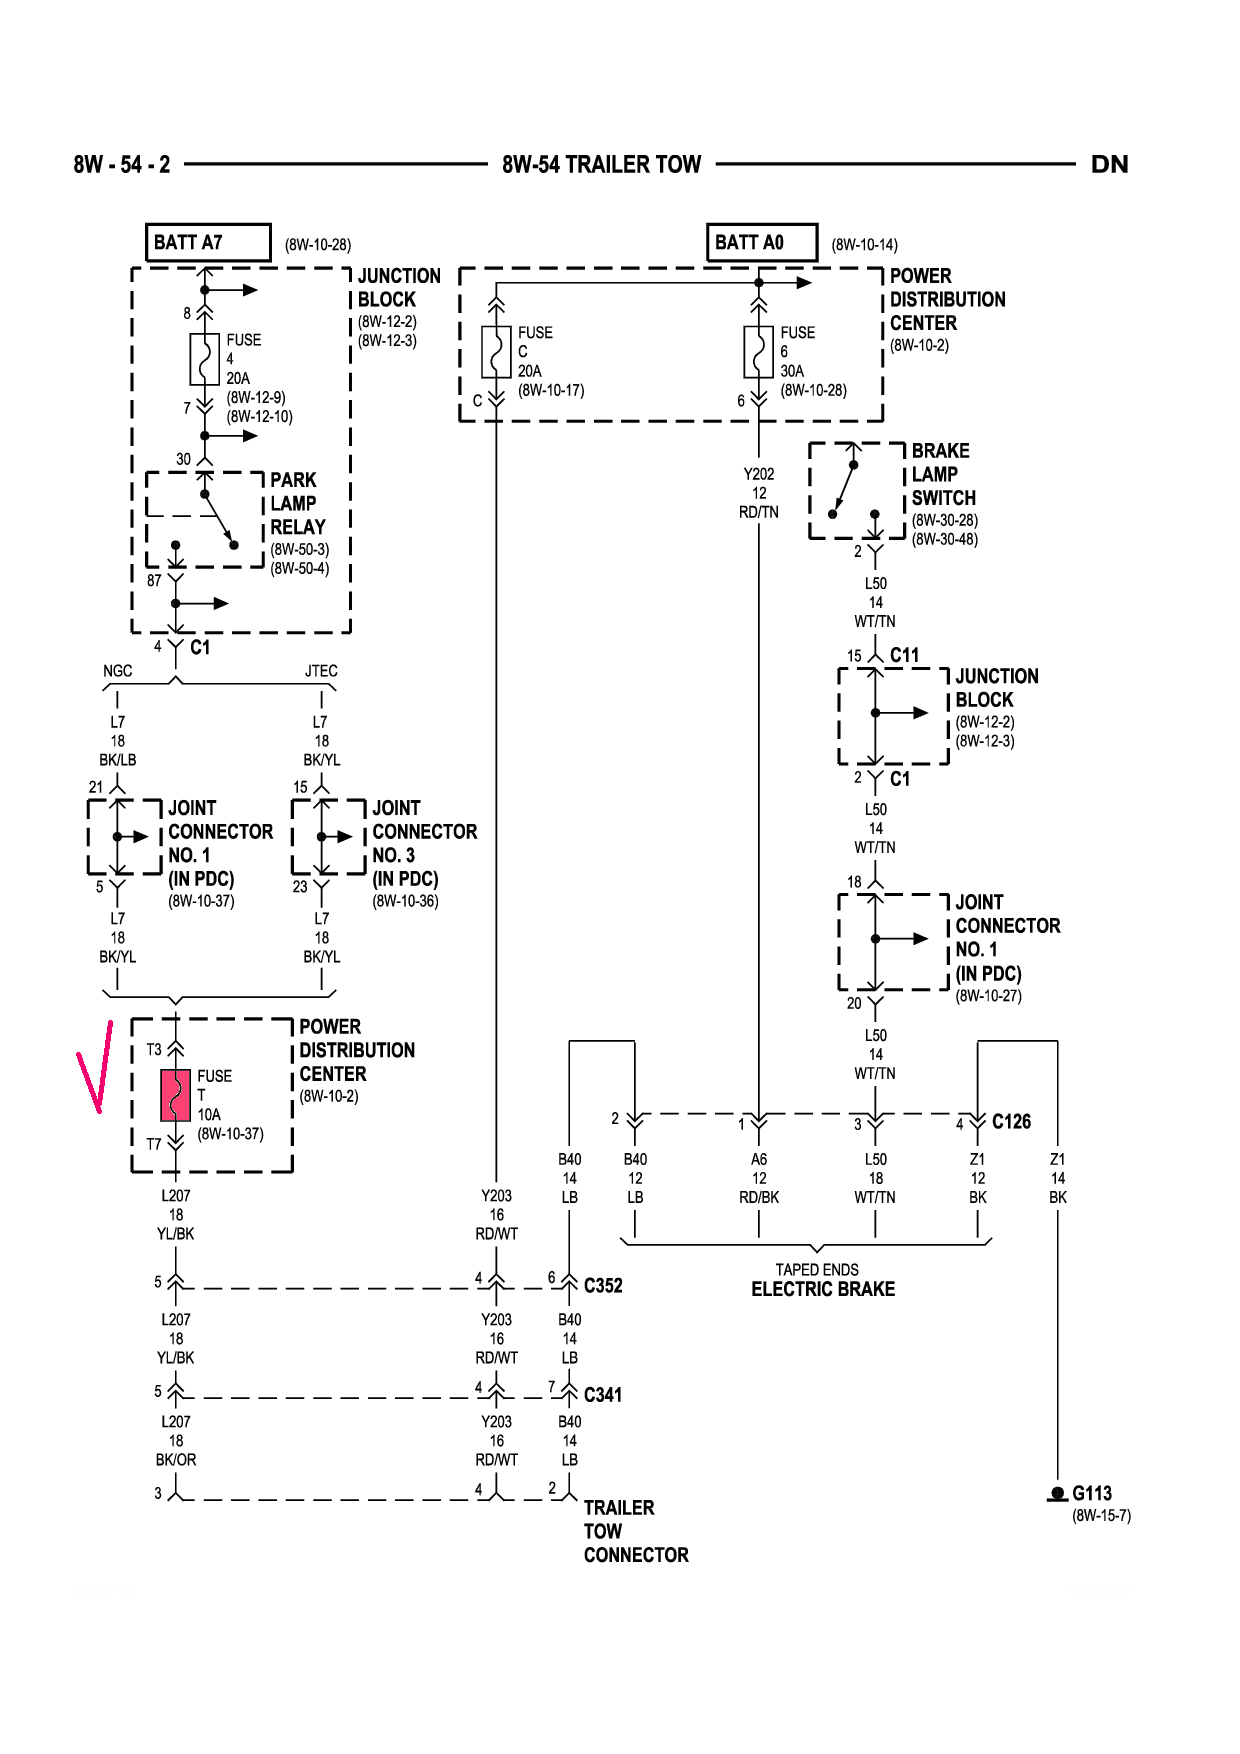 dodge ram trailer wiring harness diagram i have a 2001 dodge durango without tow package but the ...